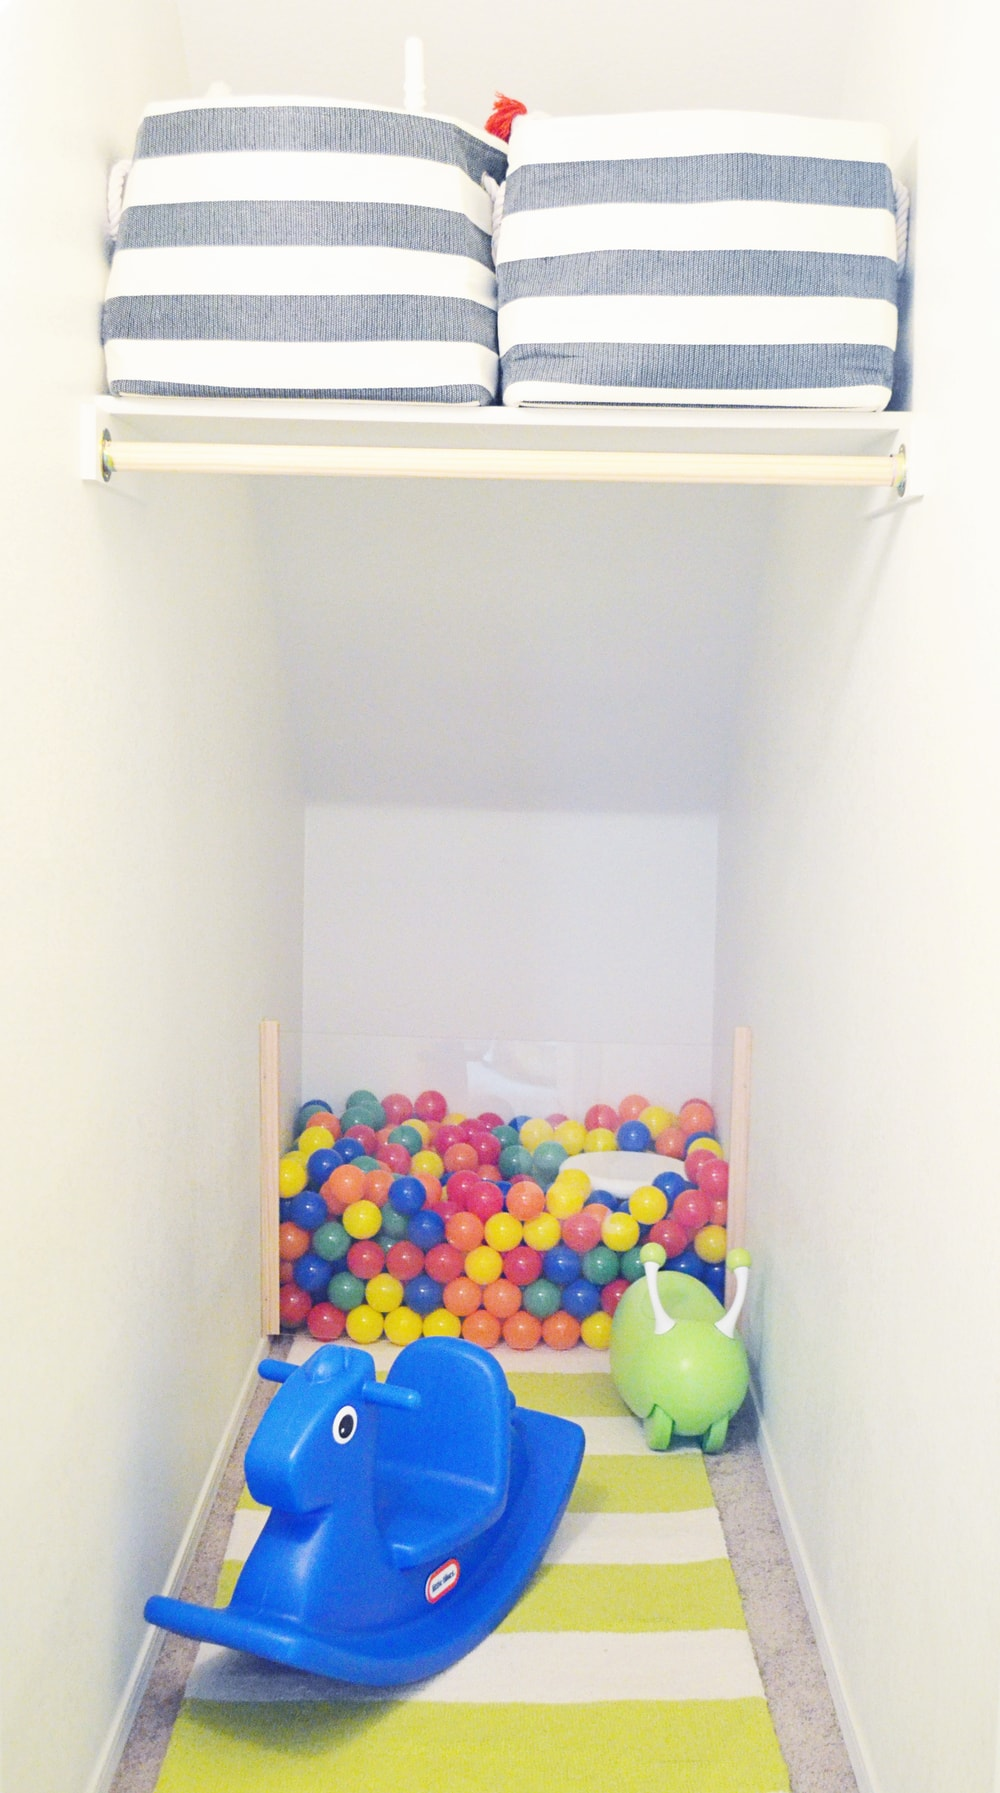 How+To+Organize+Your+Toys+Using+A+Toy+Rotation+System+_+Momma+Society-The+Community+of+Modern+Moms+_+www.MommaSociety (5)-min.jpg